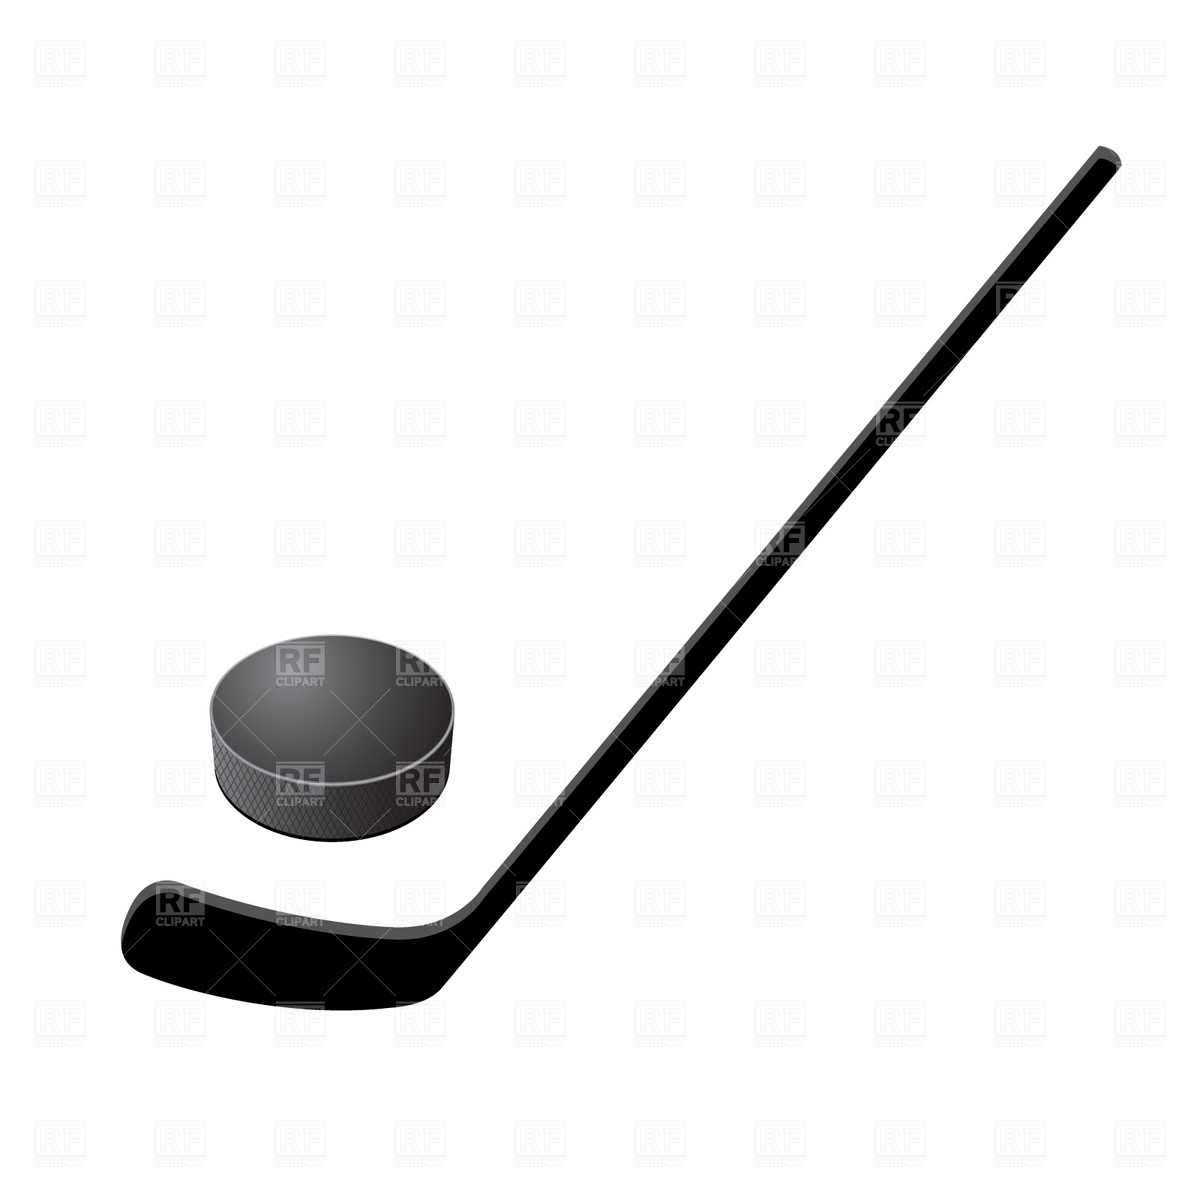 1200x1200 Hockey Stick And Puck Free Vector Clip Art Image